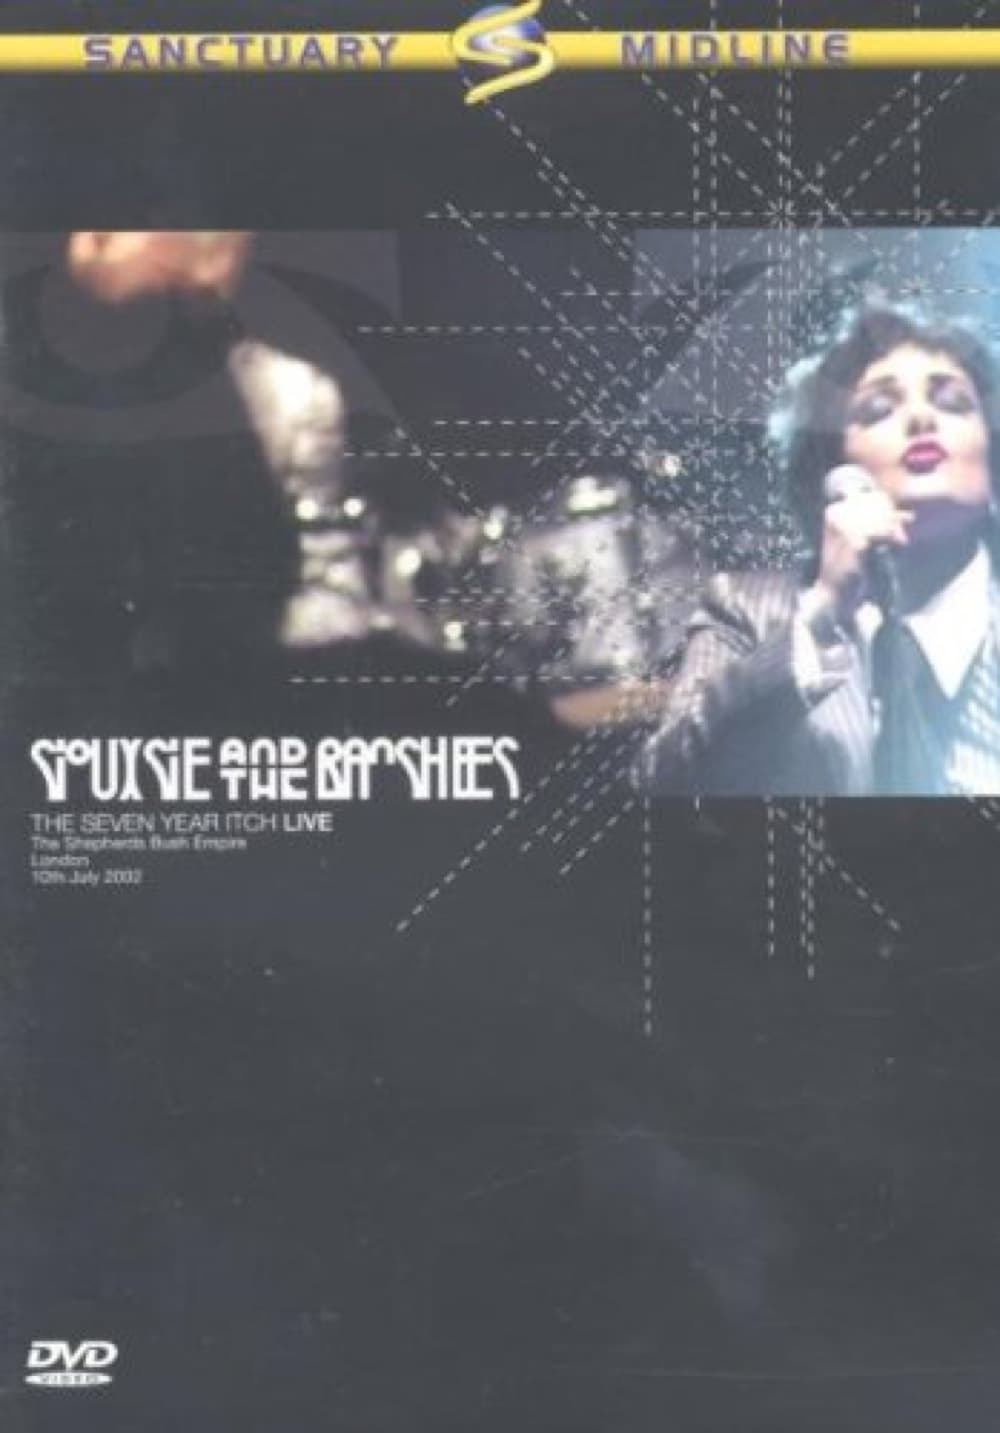 Siouxsie And The Banshees: The Seven Year Itch - Live Trailer